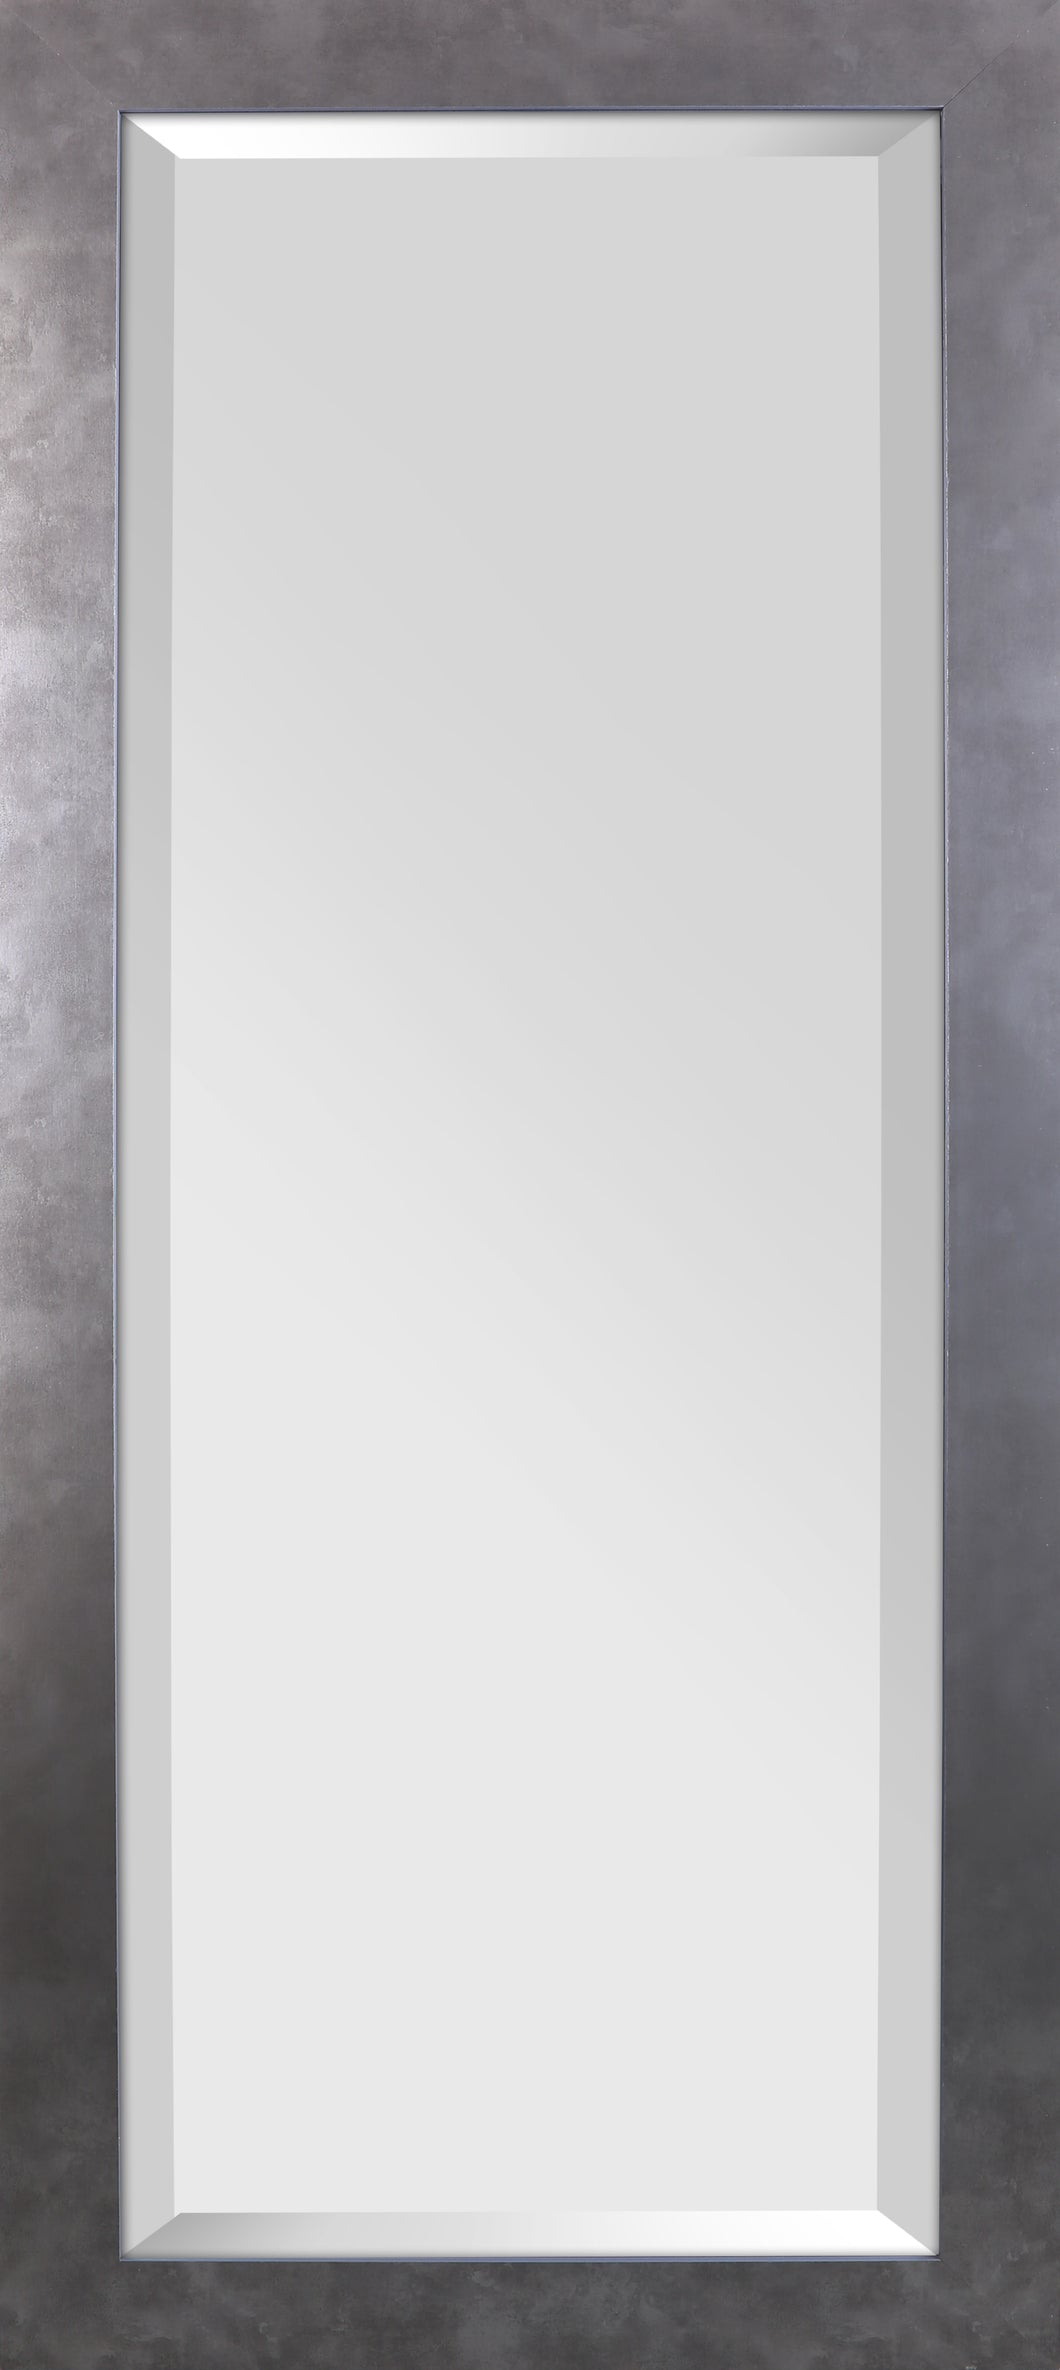 30.5X72.5 SILVER STRIP MIRROR (BEVEL MIRROR)